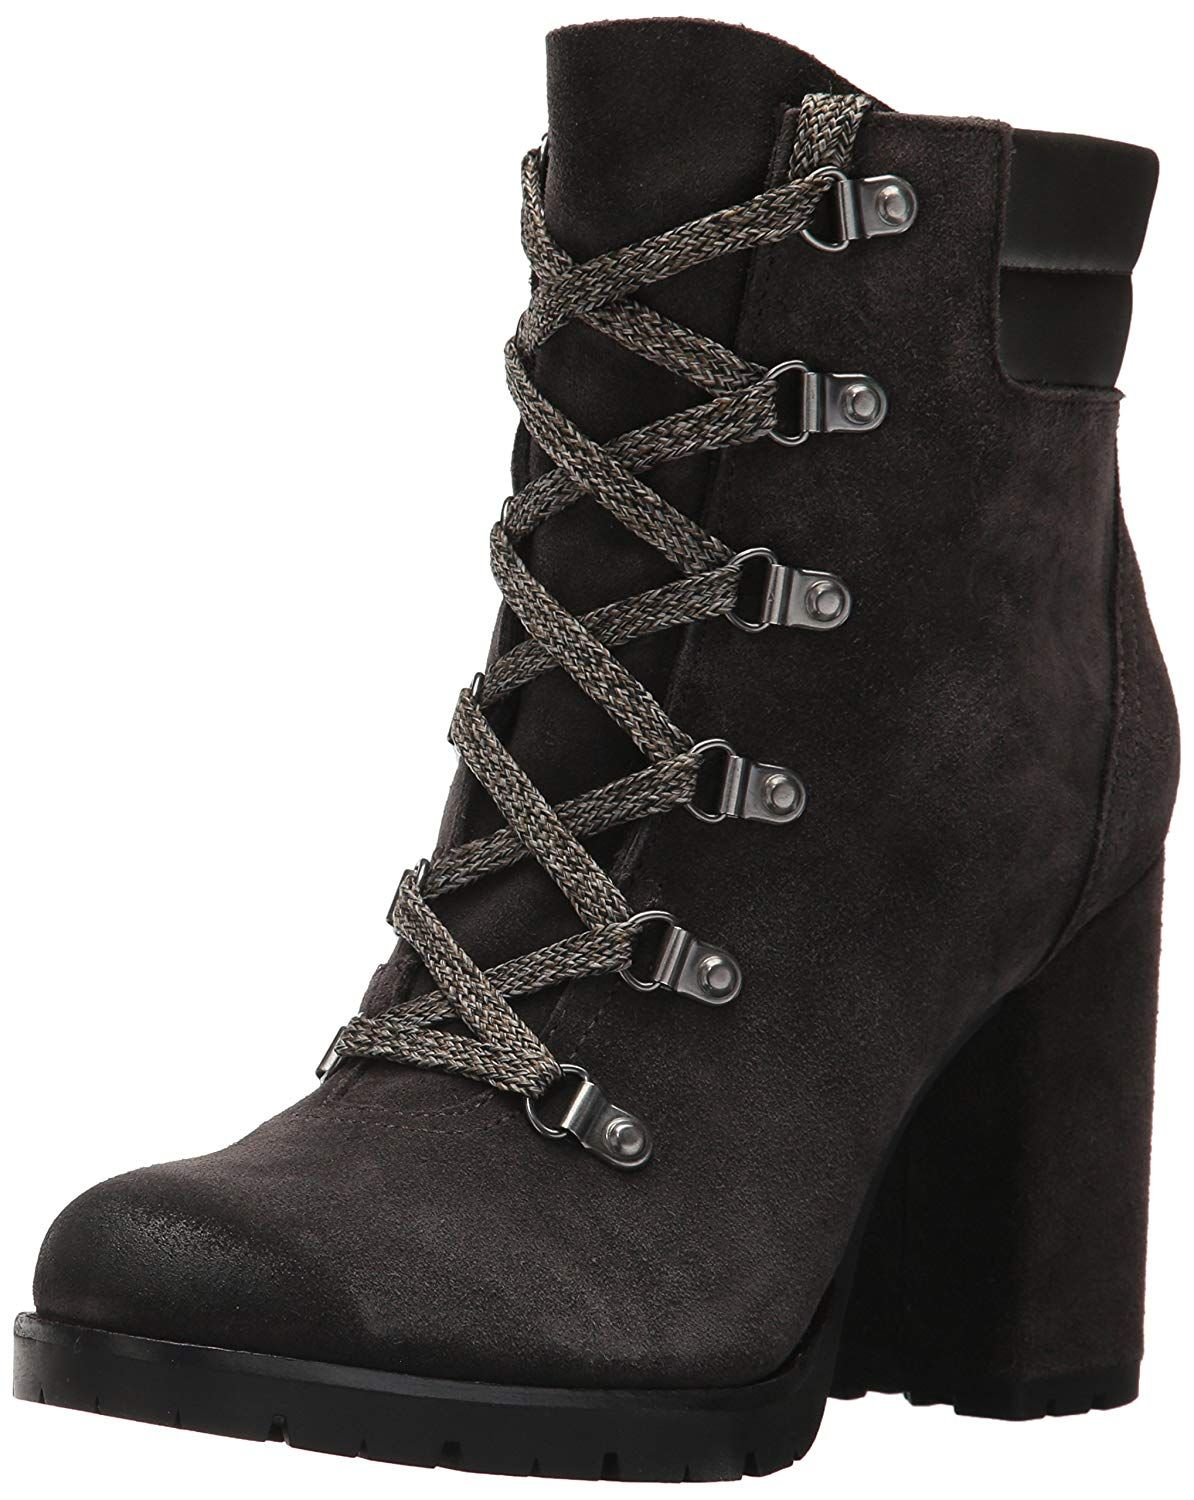 f4845f933dc9e Sam Edelman Women's Carolena Ankle Boot. Block heeled hiker style bootie  with lug sole Sam Edelman shoes epitomize chic comfort. Women's Shoes,Boots, Ankle ...